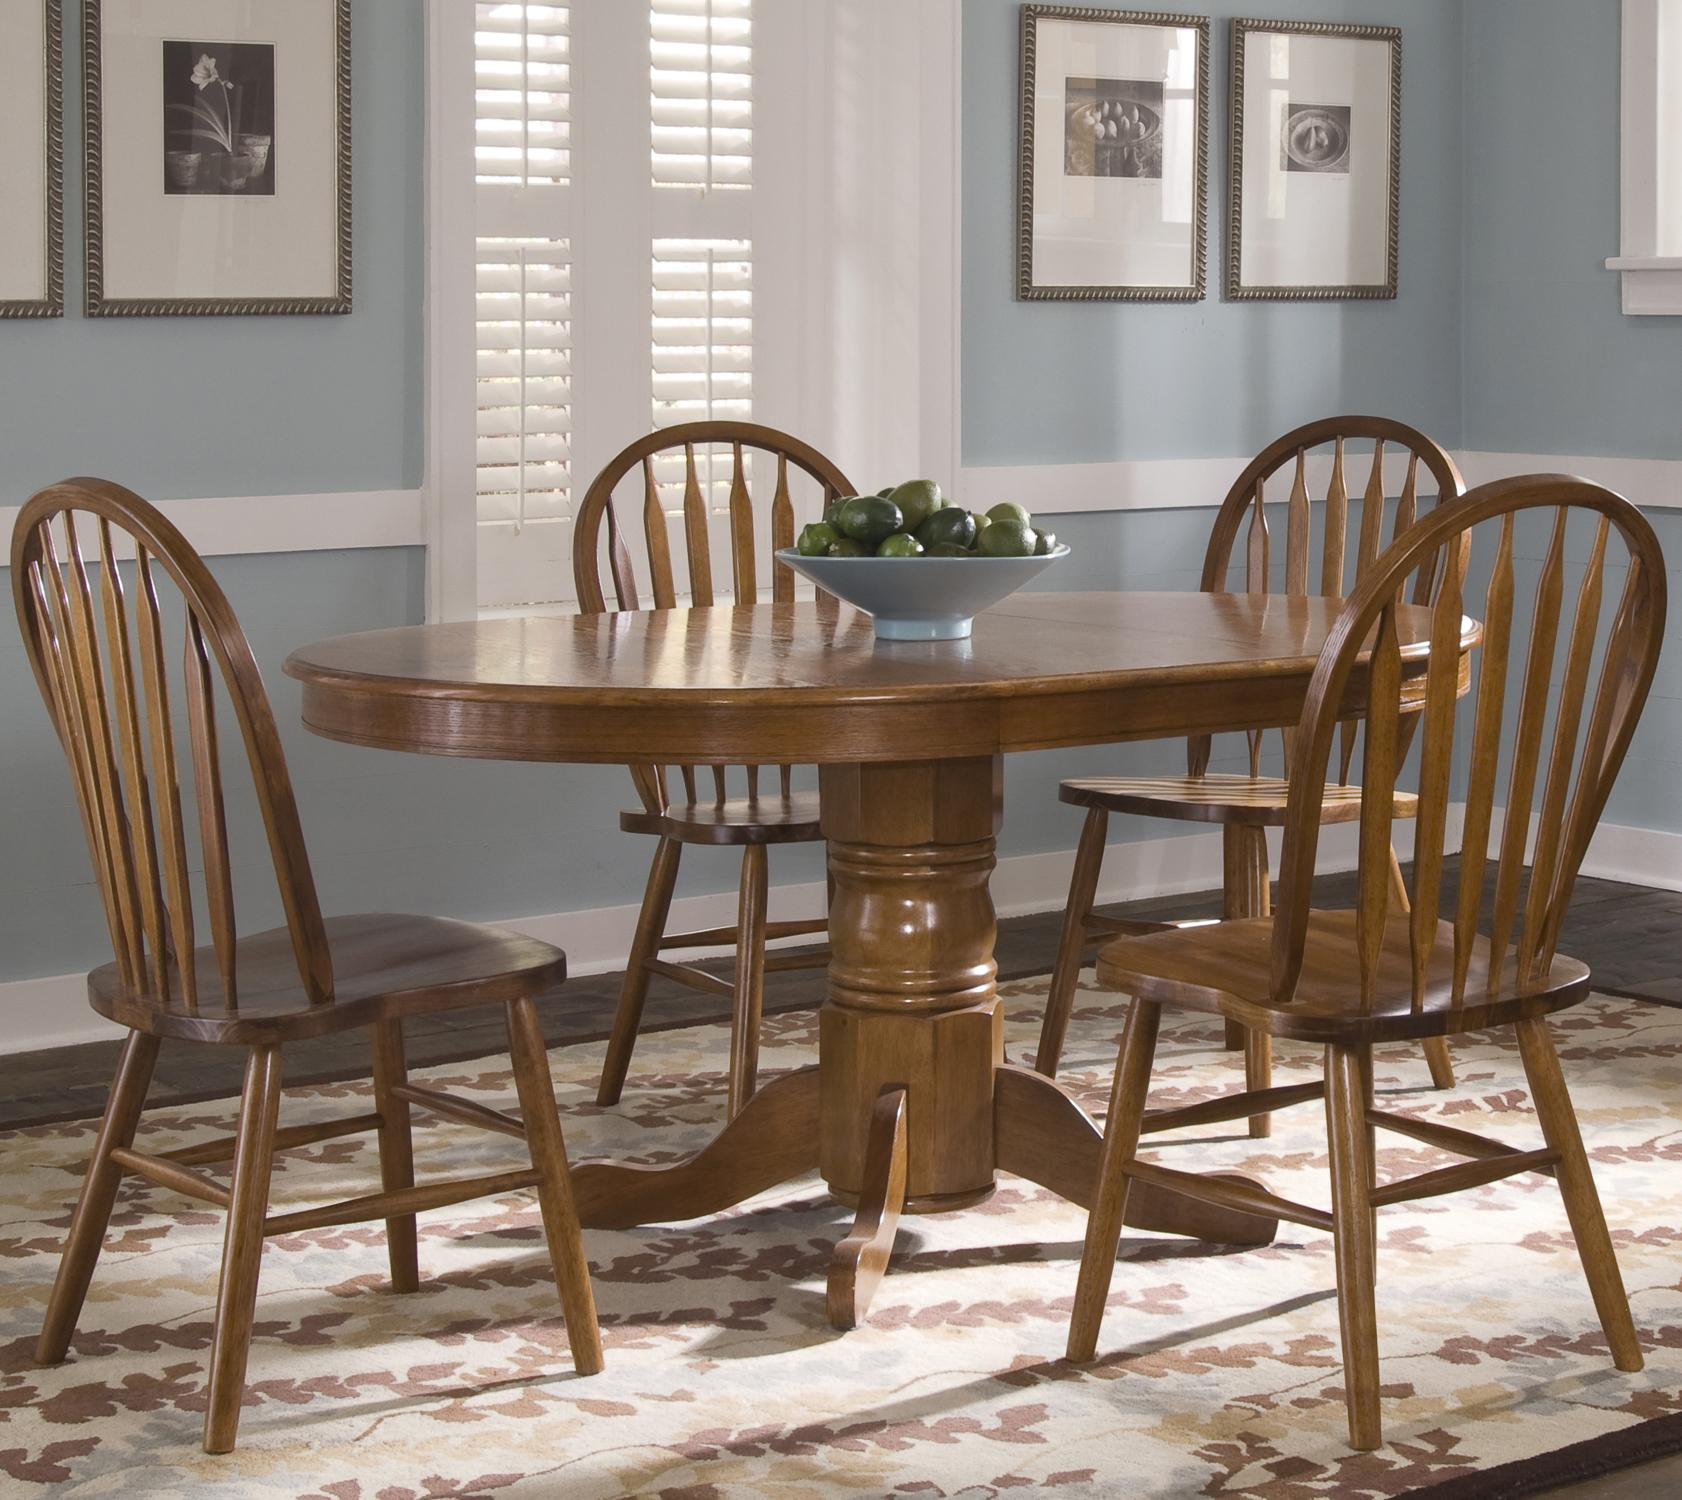 42 round pedestal dining table 50 inch pedestal table and side chair liberty furniture nostalgia oval dinner w windsor